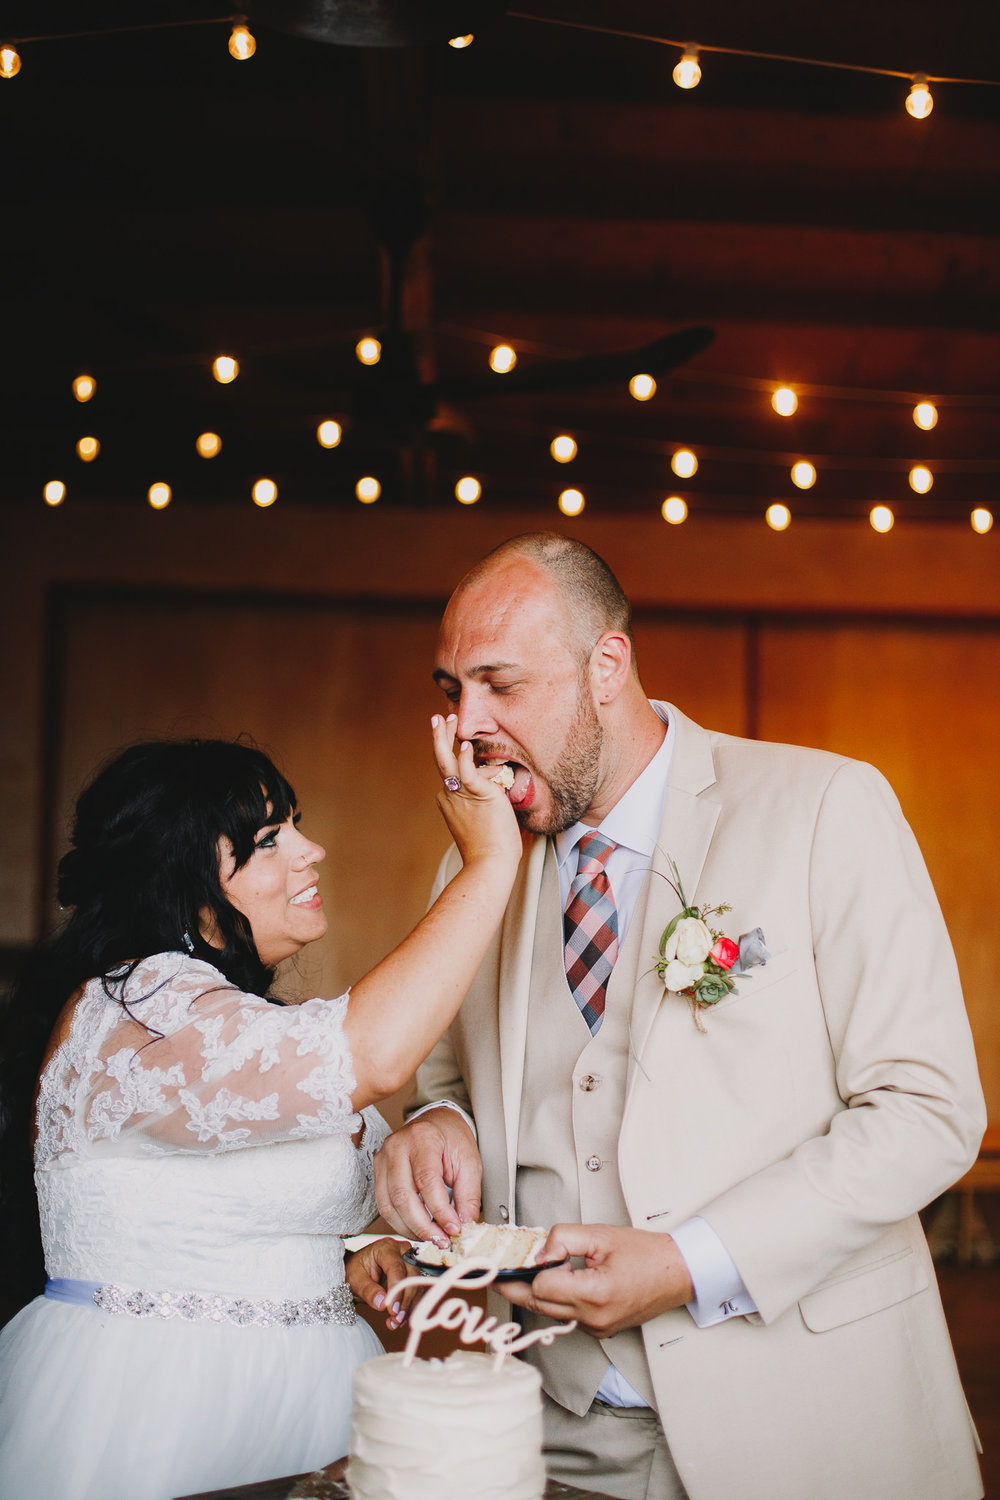 Archer Inspired Photography Fitz Place San Martin Wedding Lifestyle Documentary Affordable Photographer South Bay-686.jpg